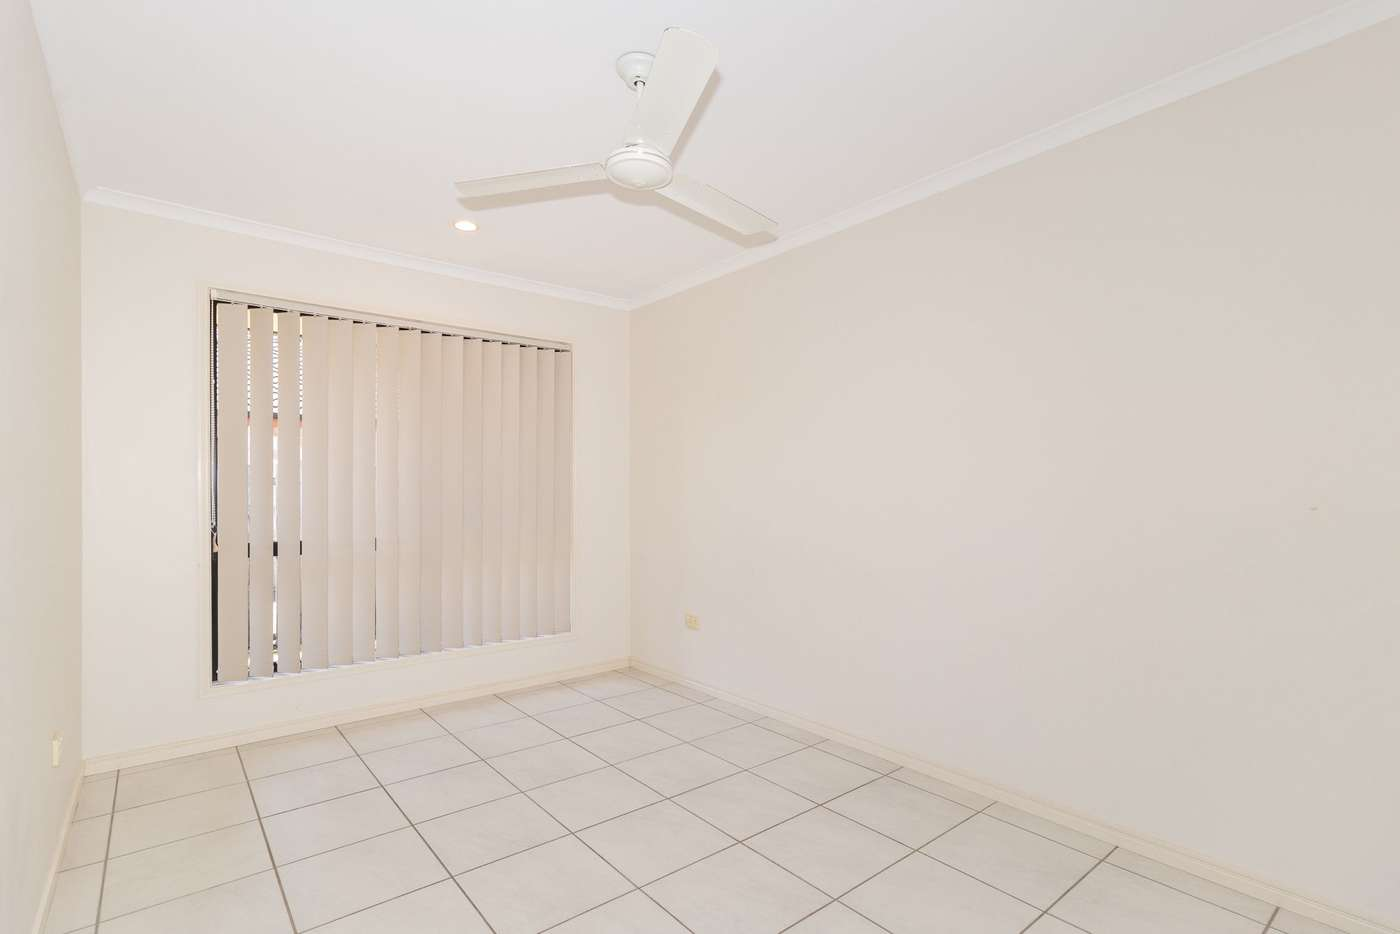 Seventh view of Homely house listing, 1 Northwest Bay Court, Wondunna QLD 4655